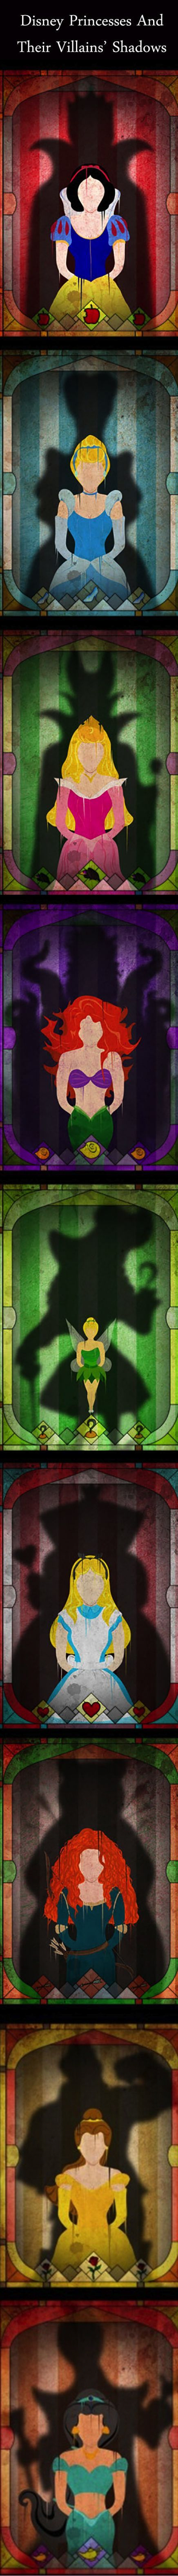 9 Disney Heroes Who Are Haunted By Their Villains' Shadows: